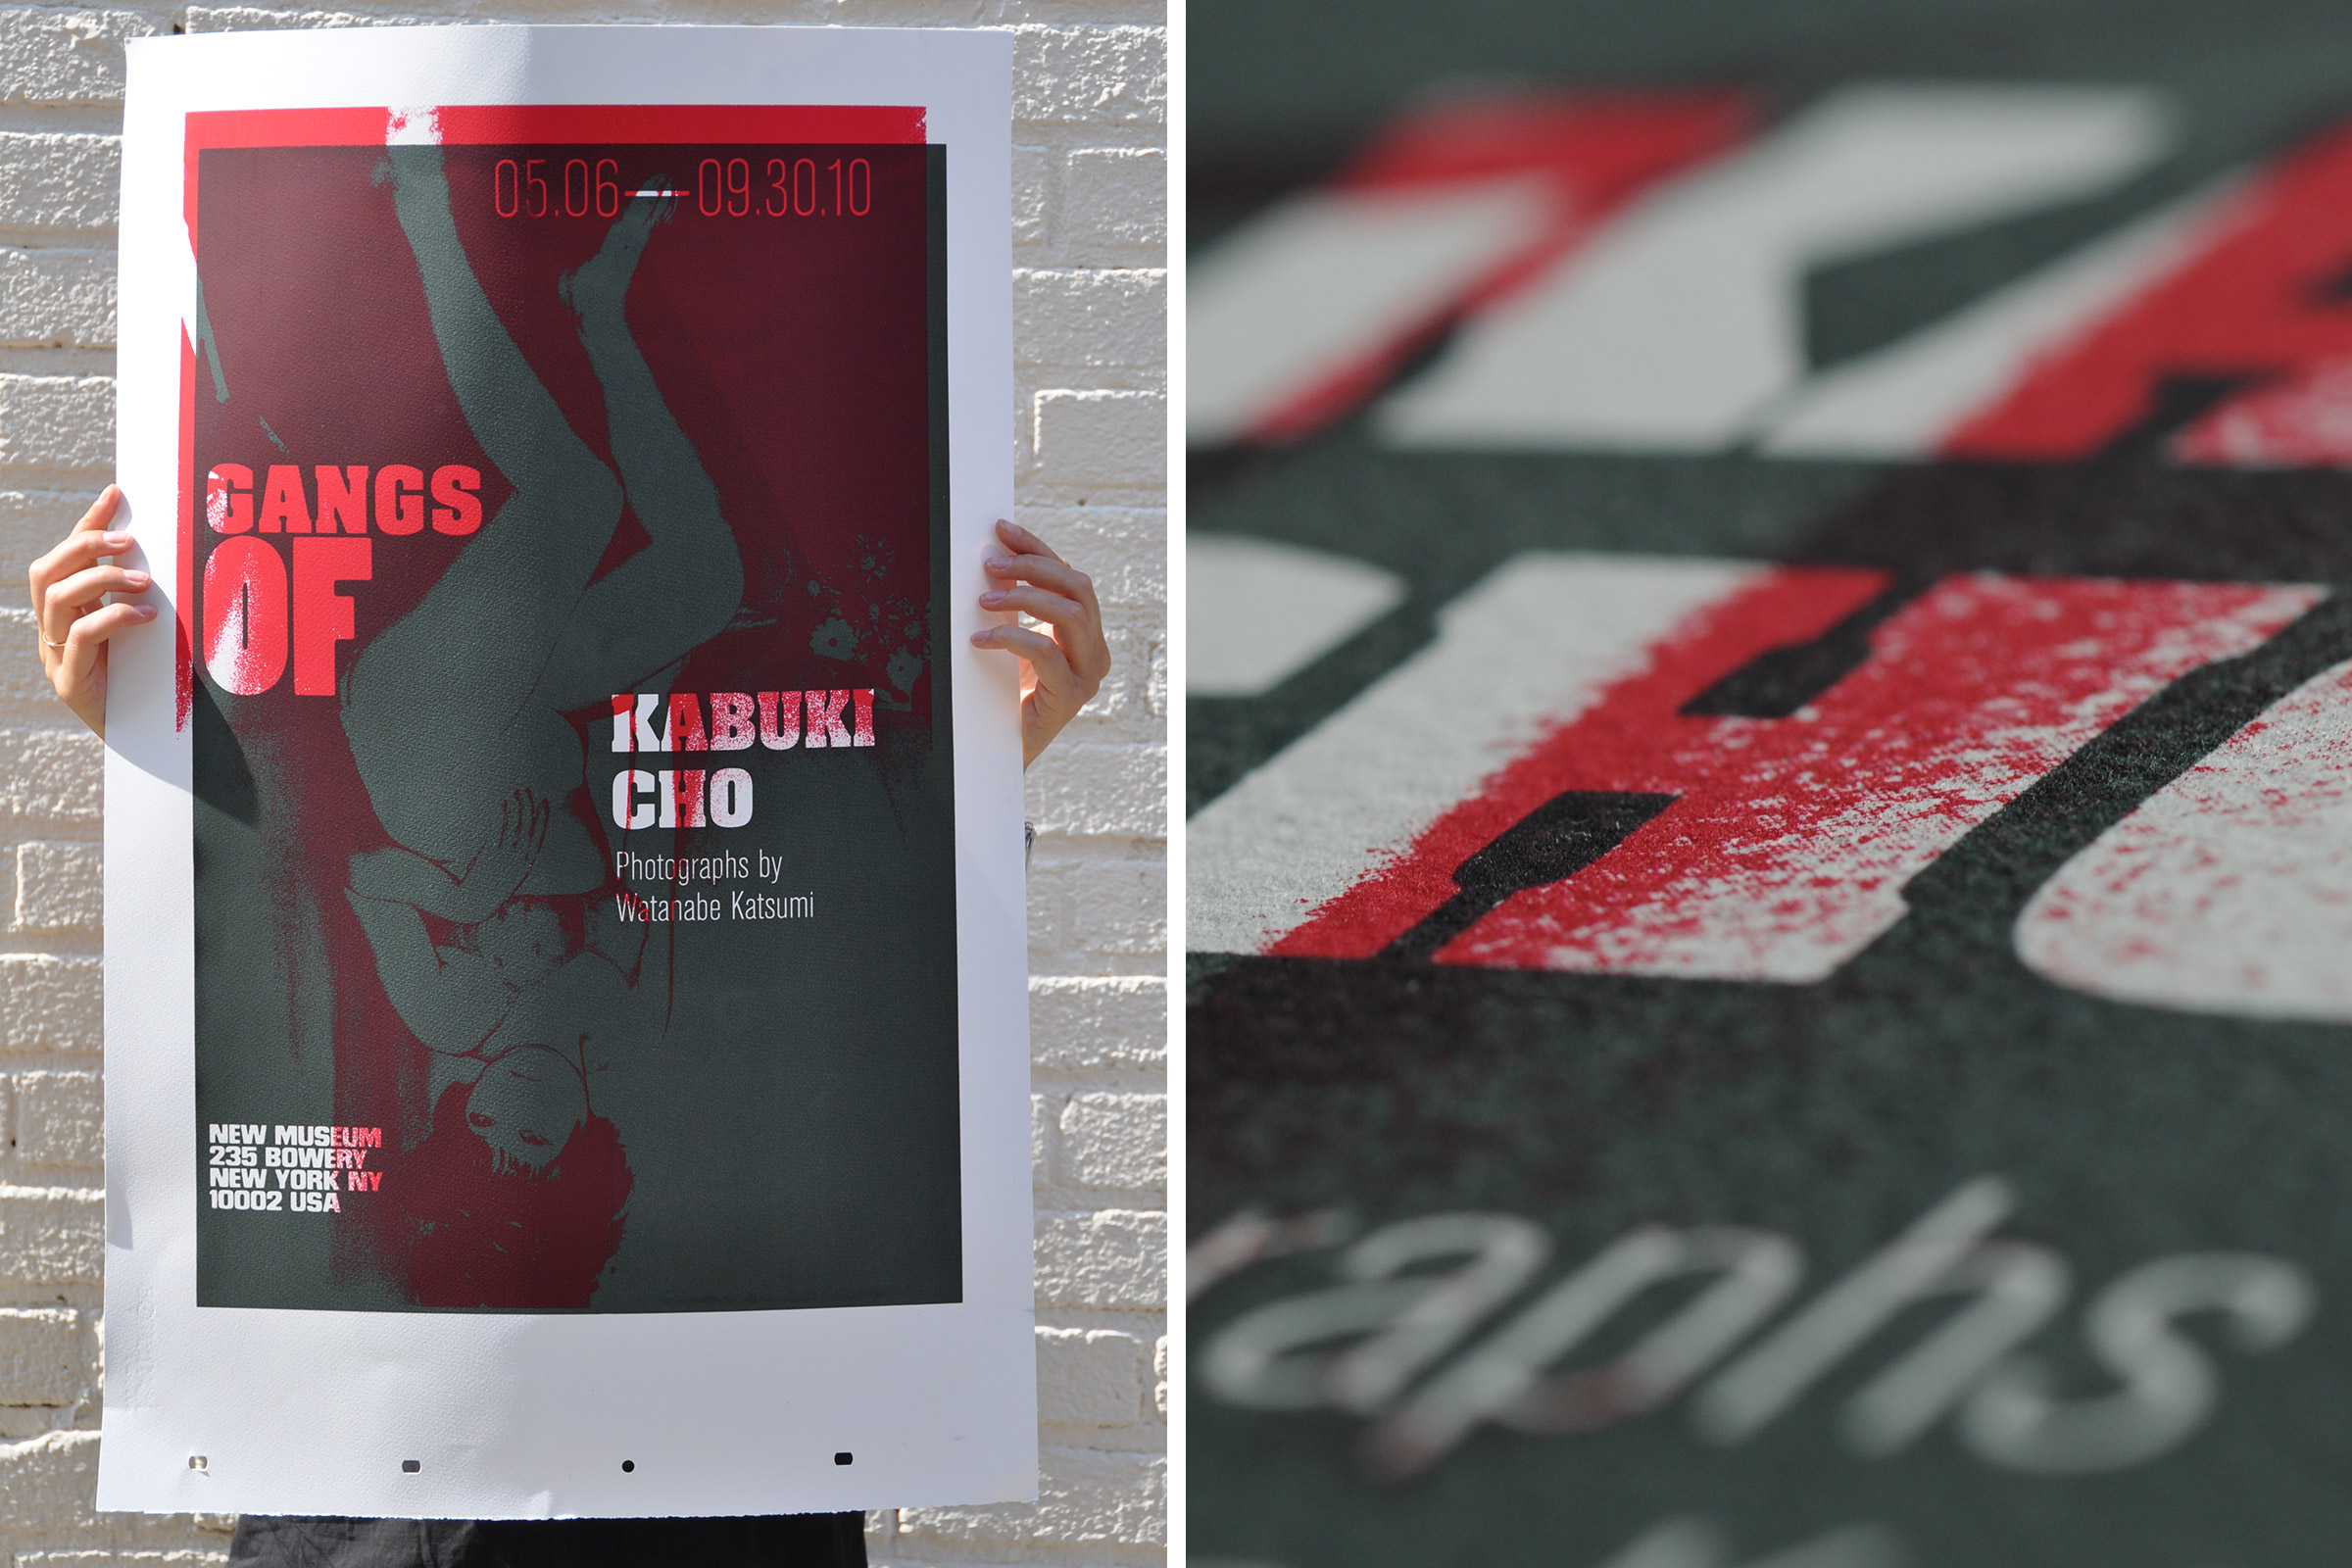 kabuki-cho, poster, siebdruck, the new school, Parsons school of design